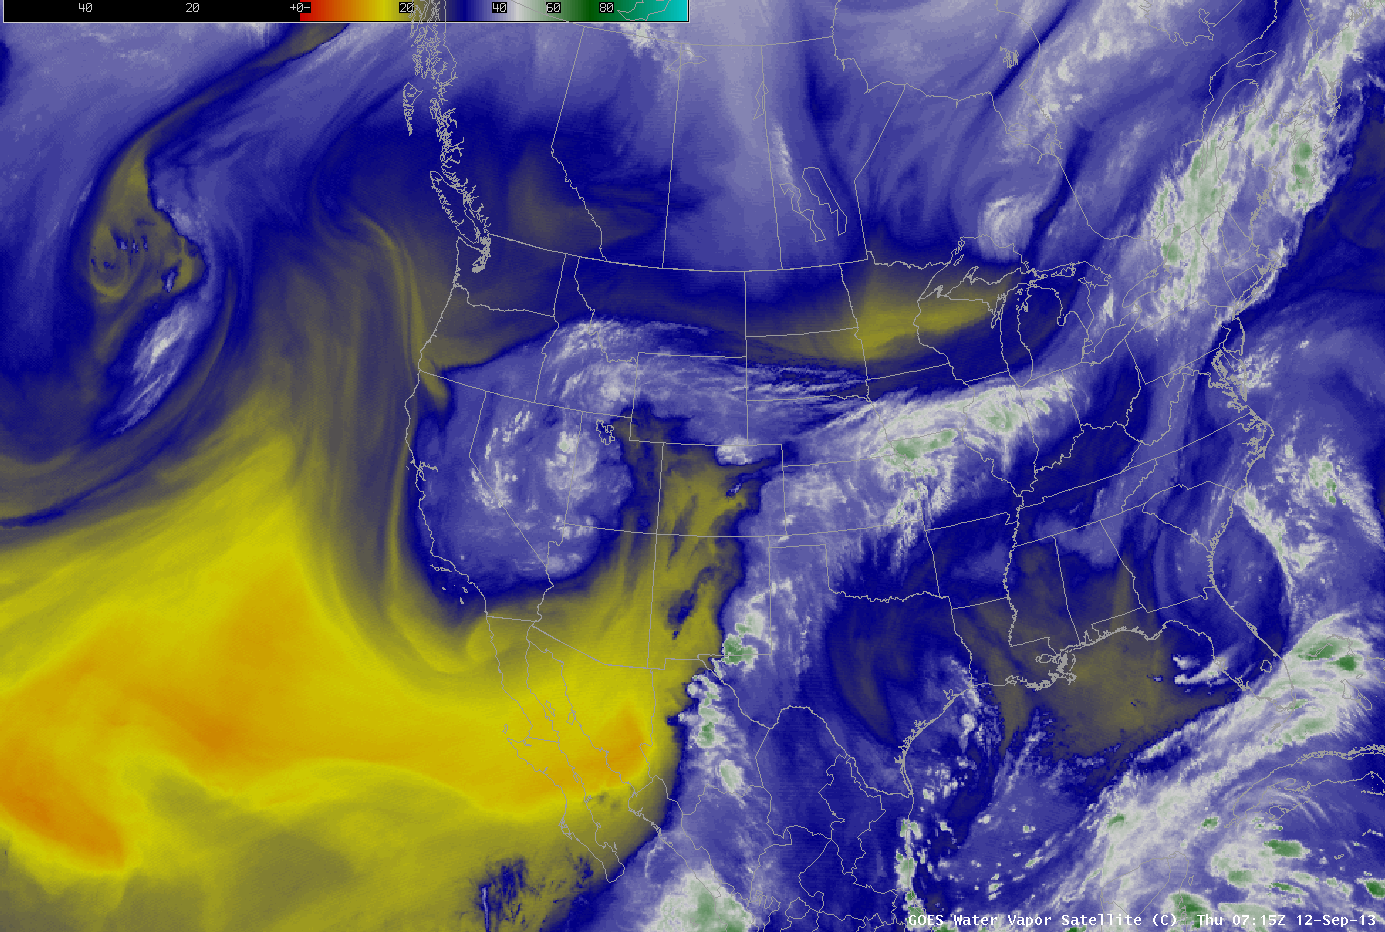 Water vapor satellite image showing tropical moisture pulled over Colorado.